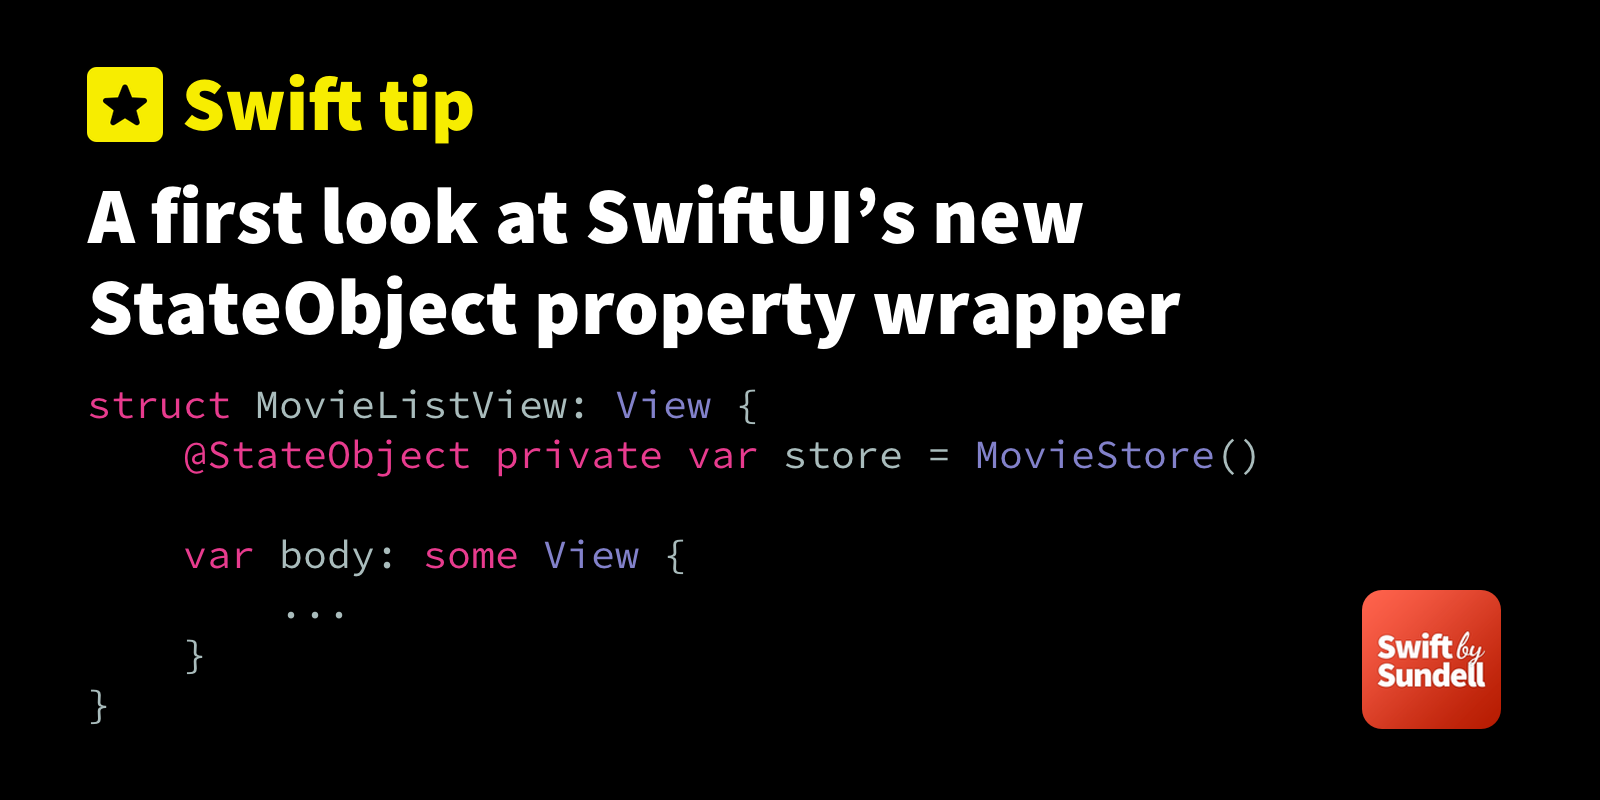 Tip: A first look at SwiftUI's new StateObject property wrapper